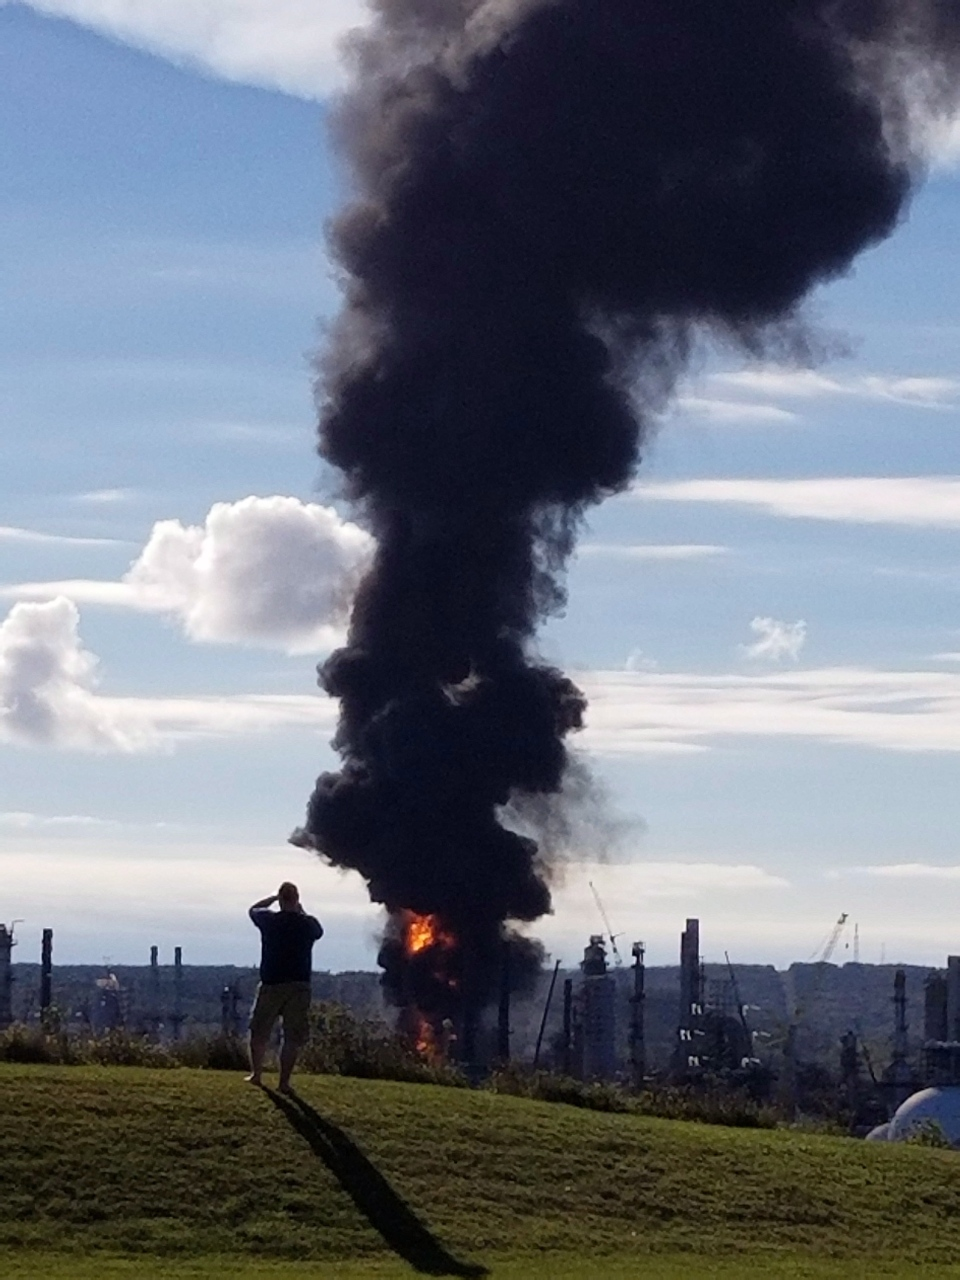 A fire and plume of smoke rises from an Irving Oil refinery following reports of an explosion in Saint John, N.B., on Monday, October 8, 2018. (THE CANADIAN PRESS/HO - Nate Guimond)